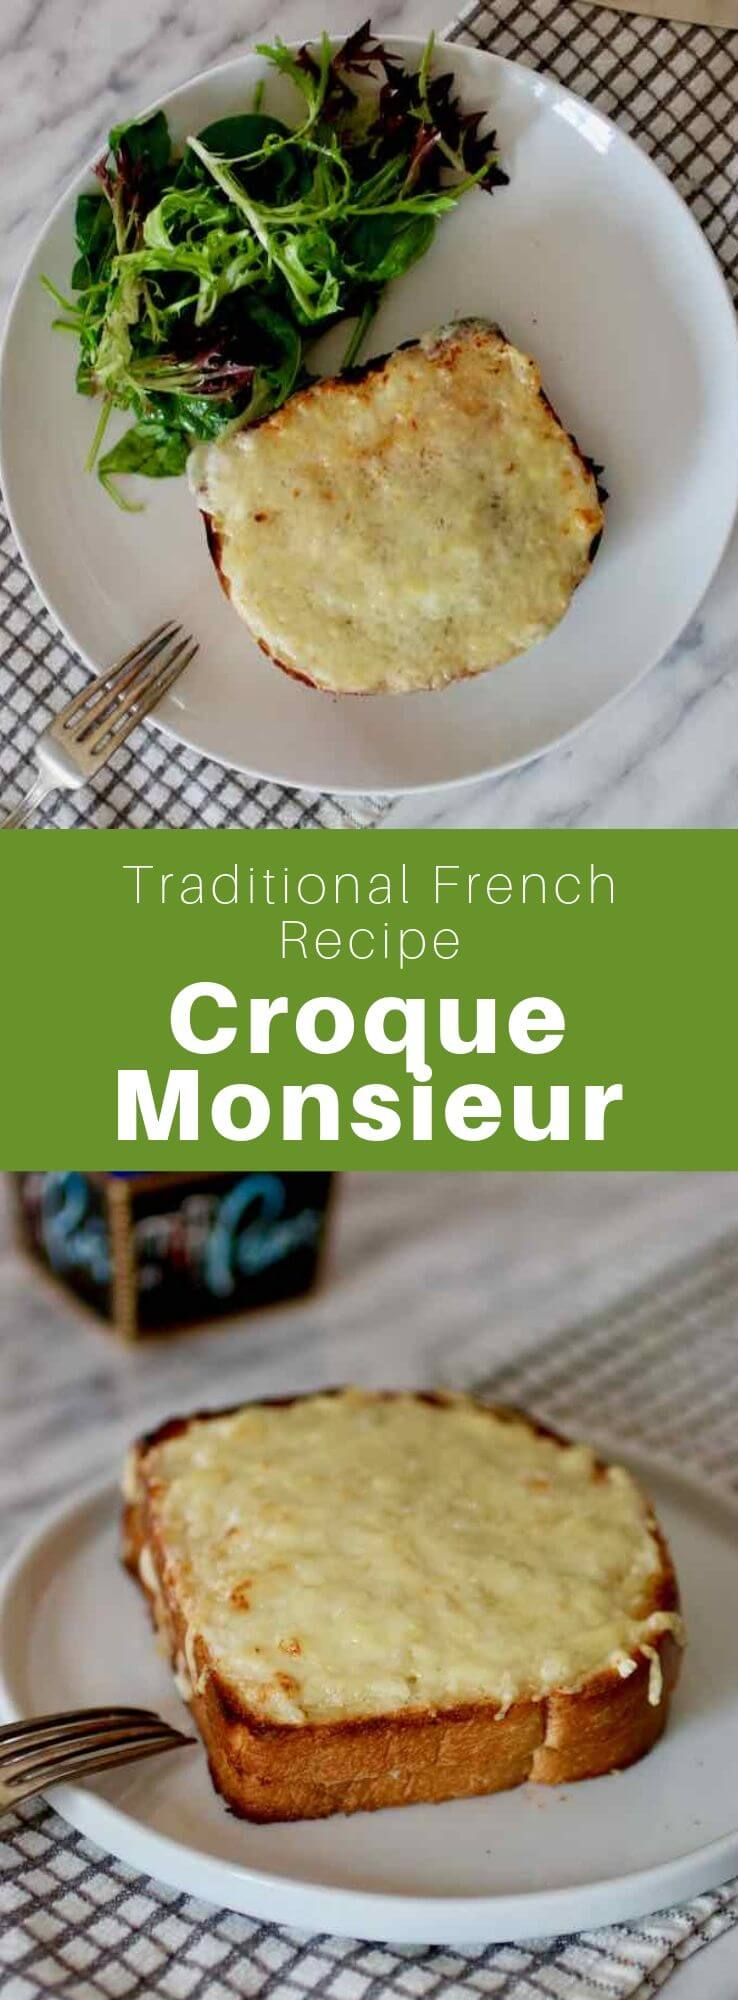 A croque-monsieur is a typical toasted French sandwich composed of two slices of bread filled with ham, cheese and Béchamel sauce. #French #FrenchRecipe #FrenchCuisine #WorldCuisine #196flavors